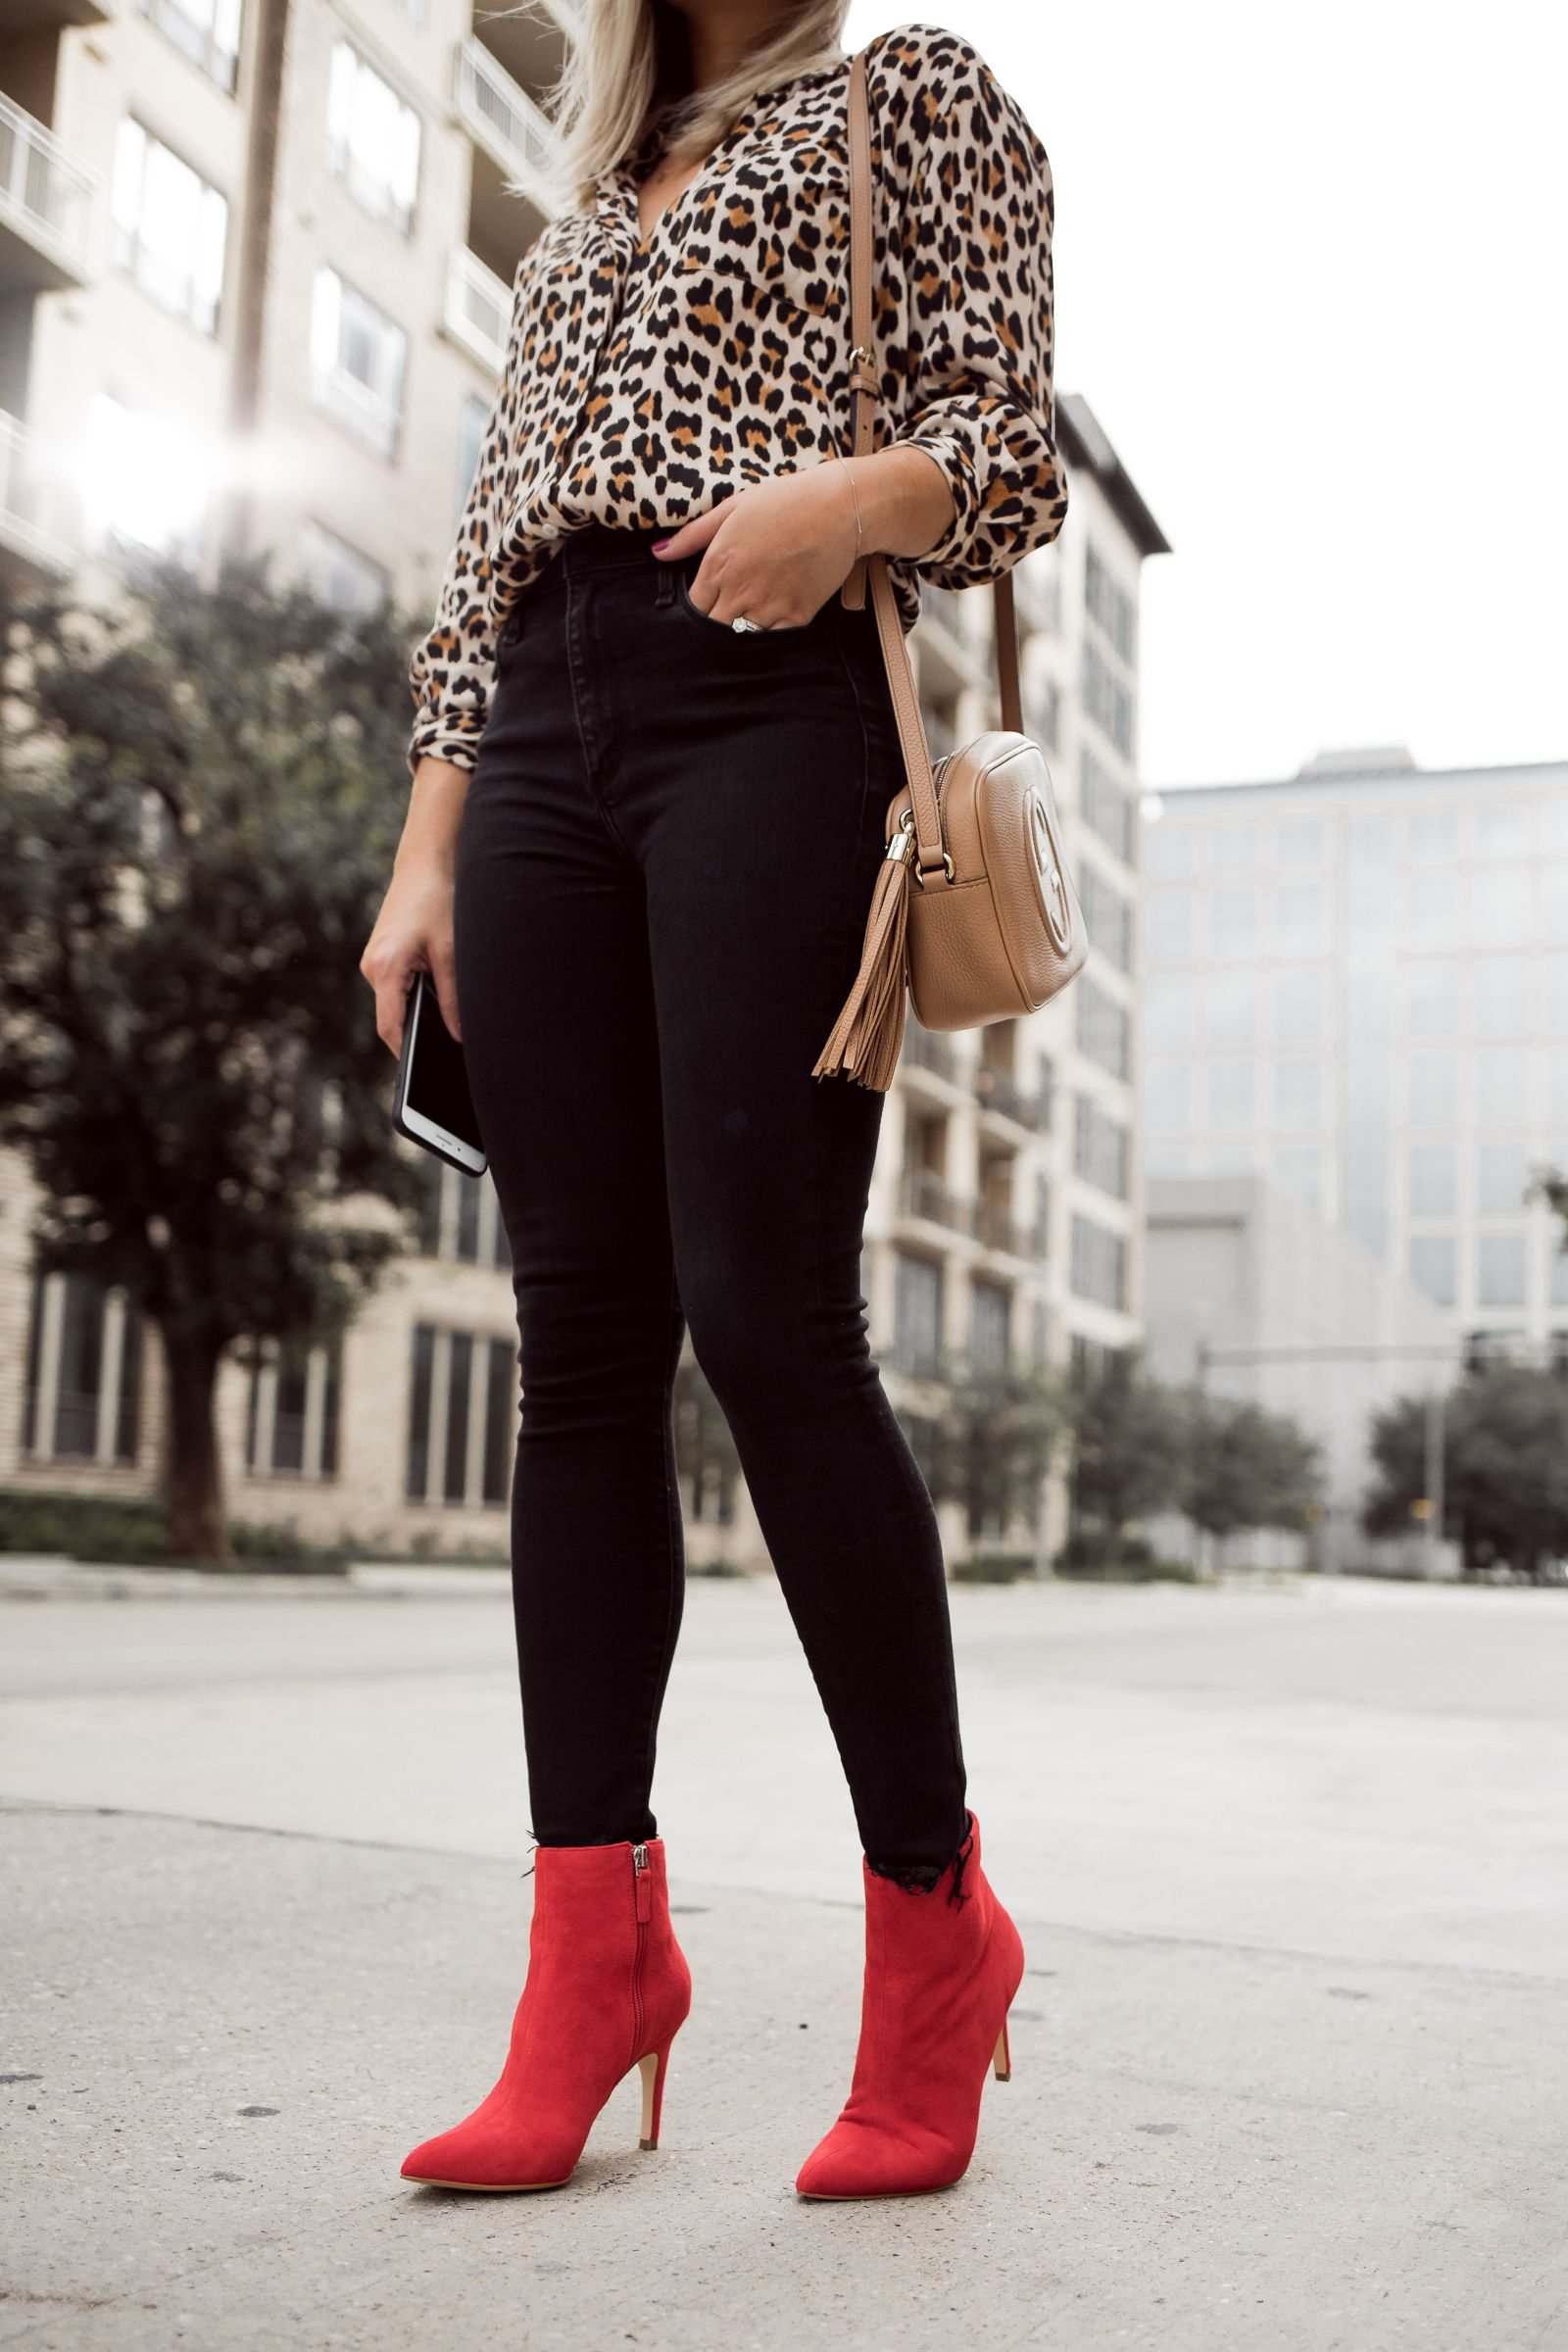 Red Denim Outfit And Heeled Ankle Boots   Outfits